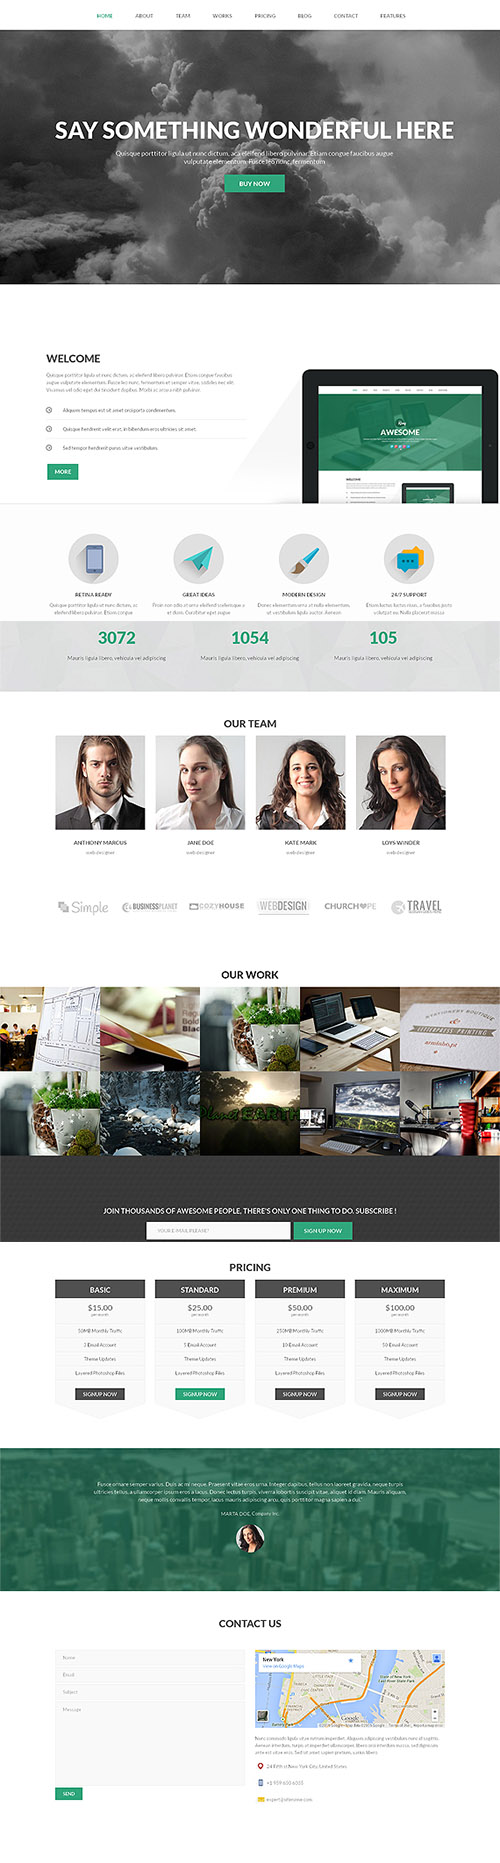 CreativeMarket - King v1.0 - Premium WordPress Theme